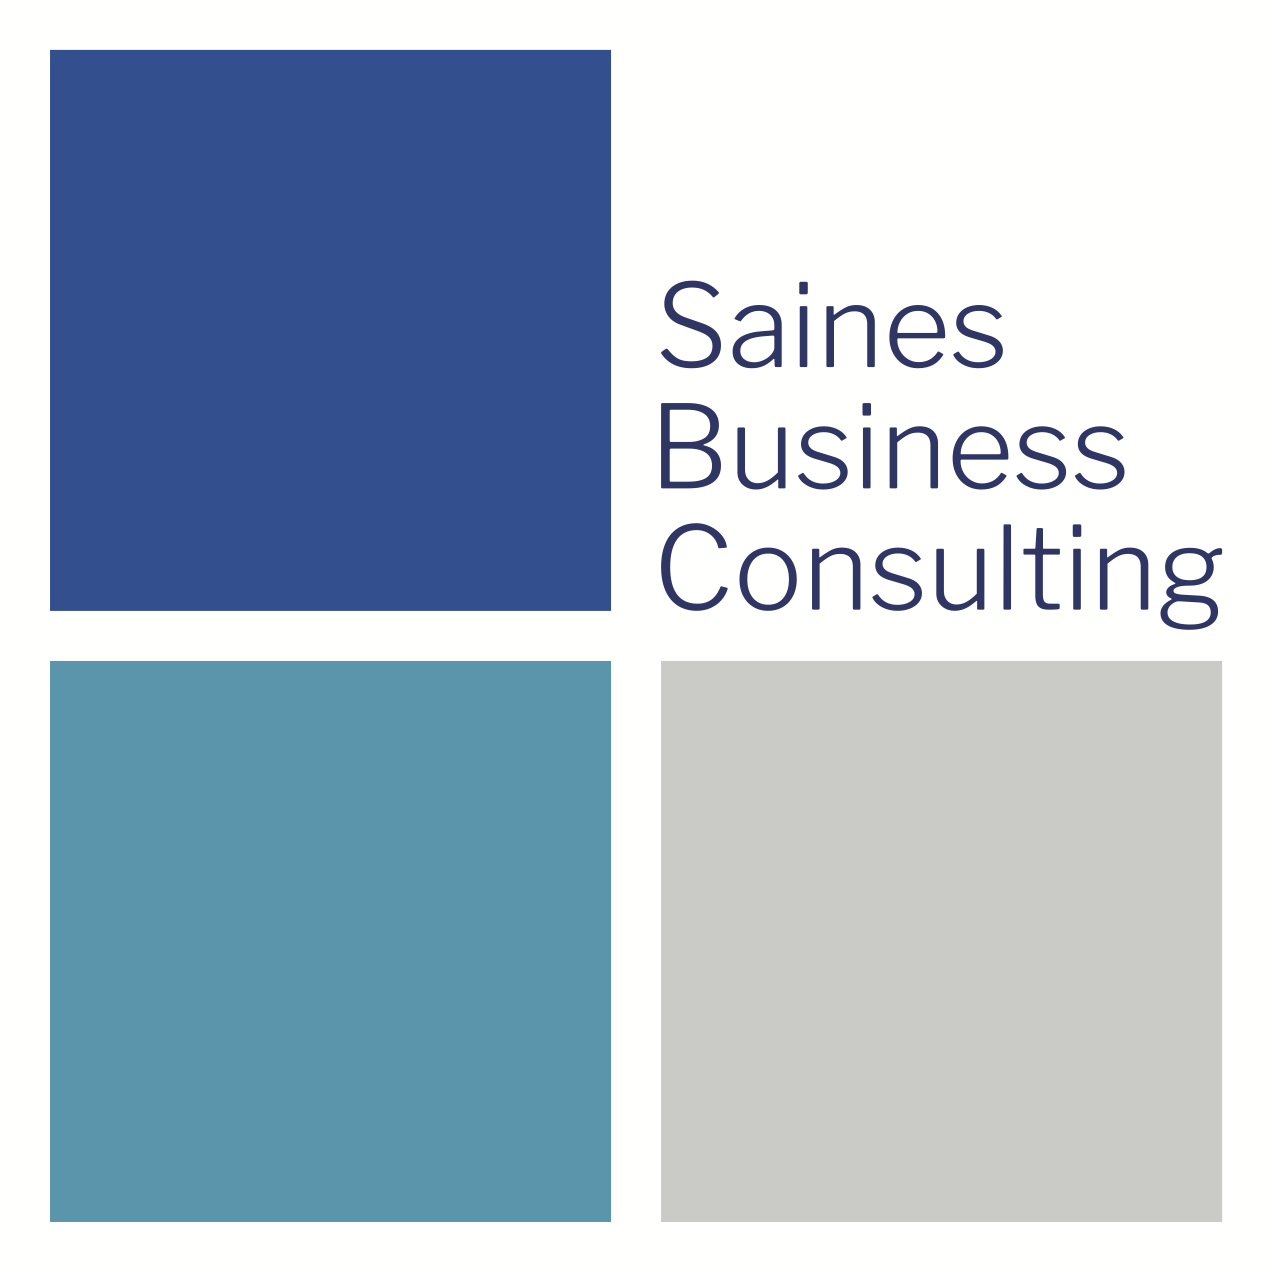 Saines Business Consulting Logo